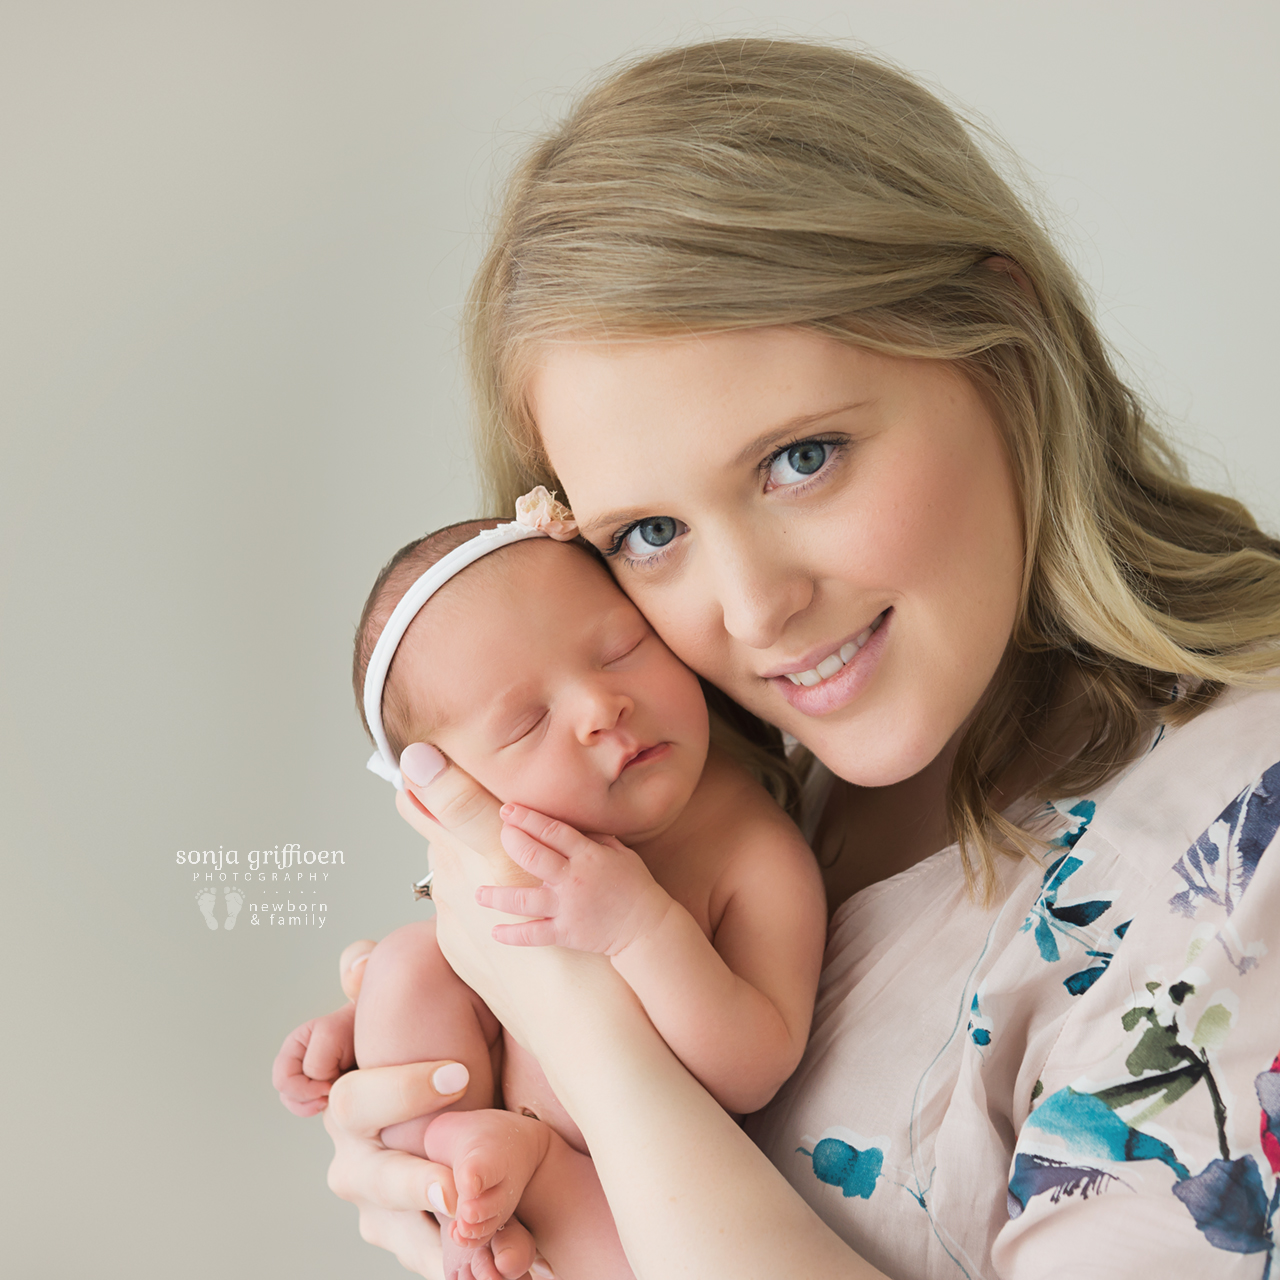 Madison-Newborn-Brisbane-Newborn-Photographer-Sonja-Griffioen-17.jpg